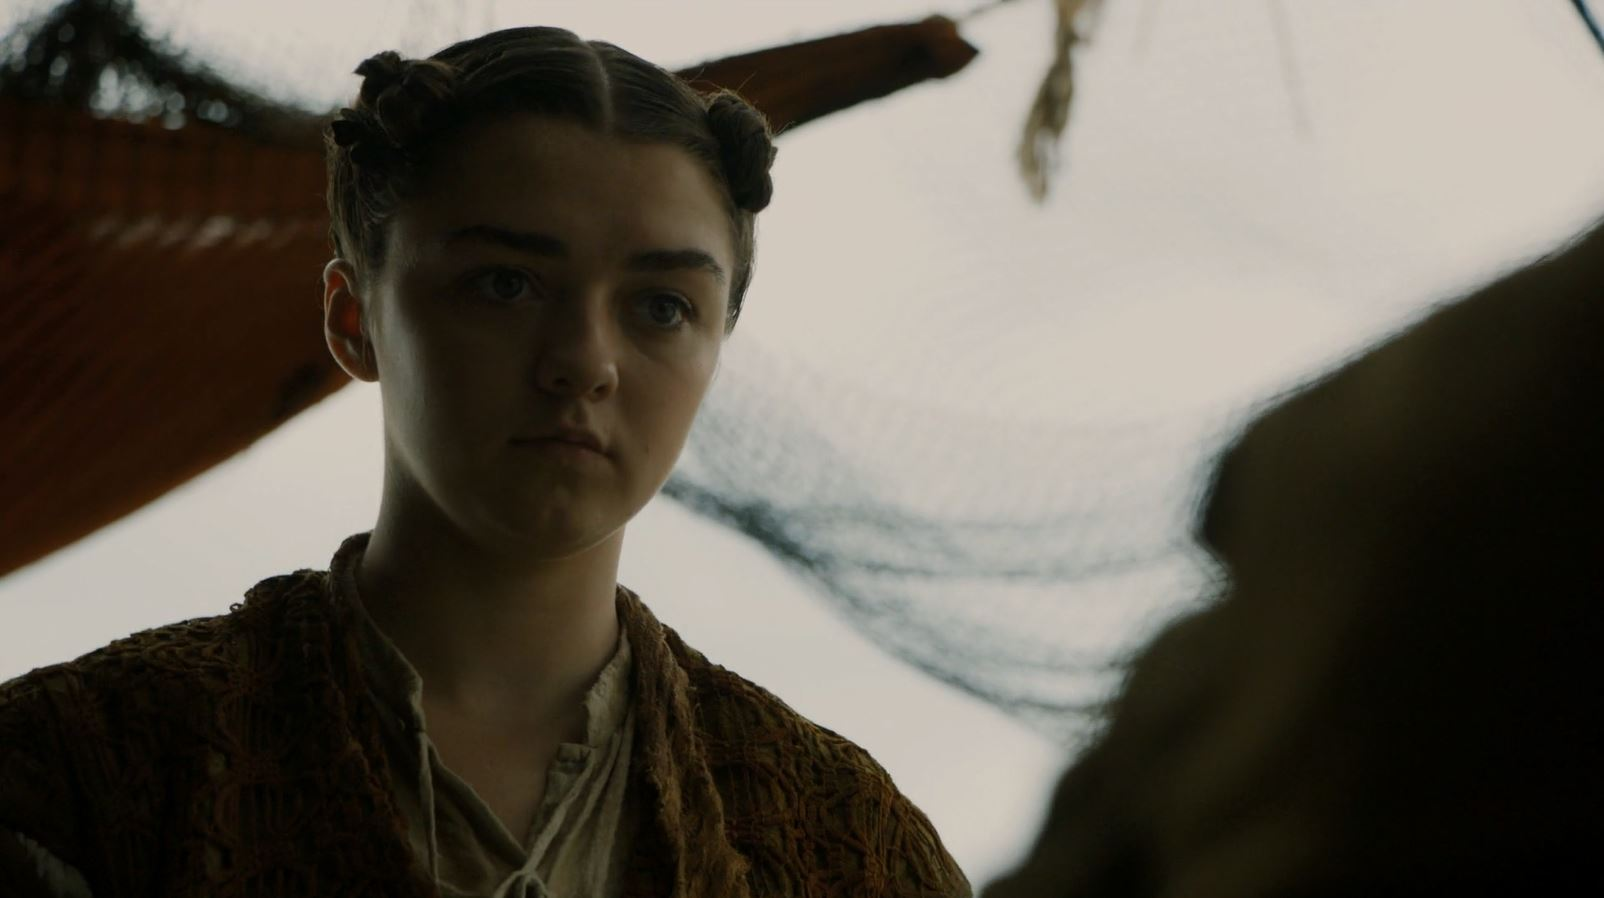 Arya in Braavos. Game of Thrones S5Ep8 Hardhome Review